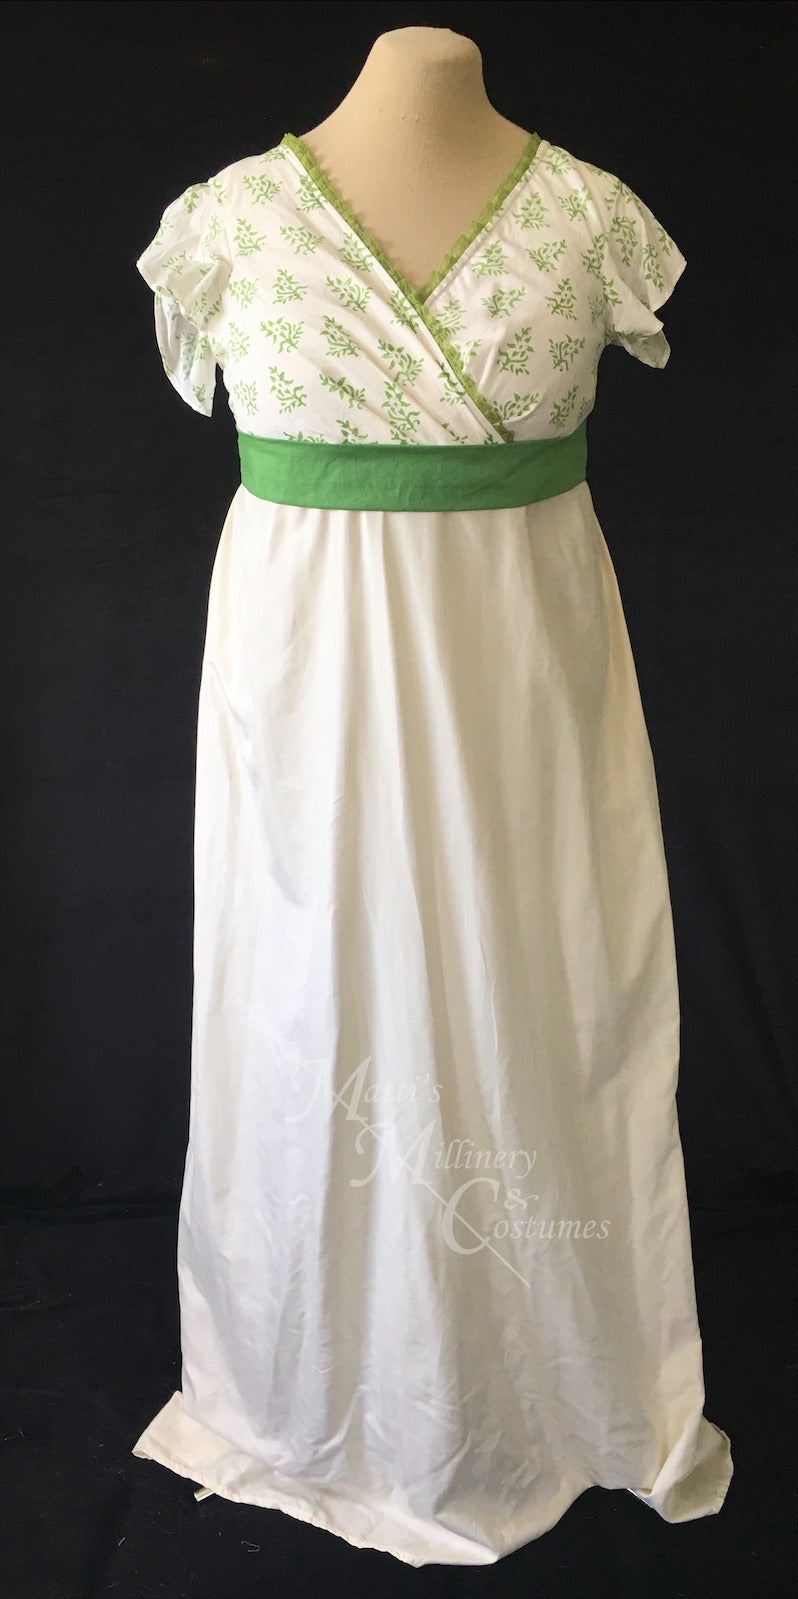 Green Illusion Block Print Cotton Regency Jane Austen Day Dress Gown